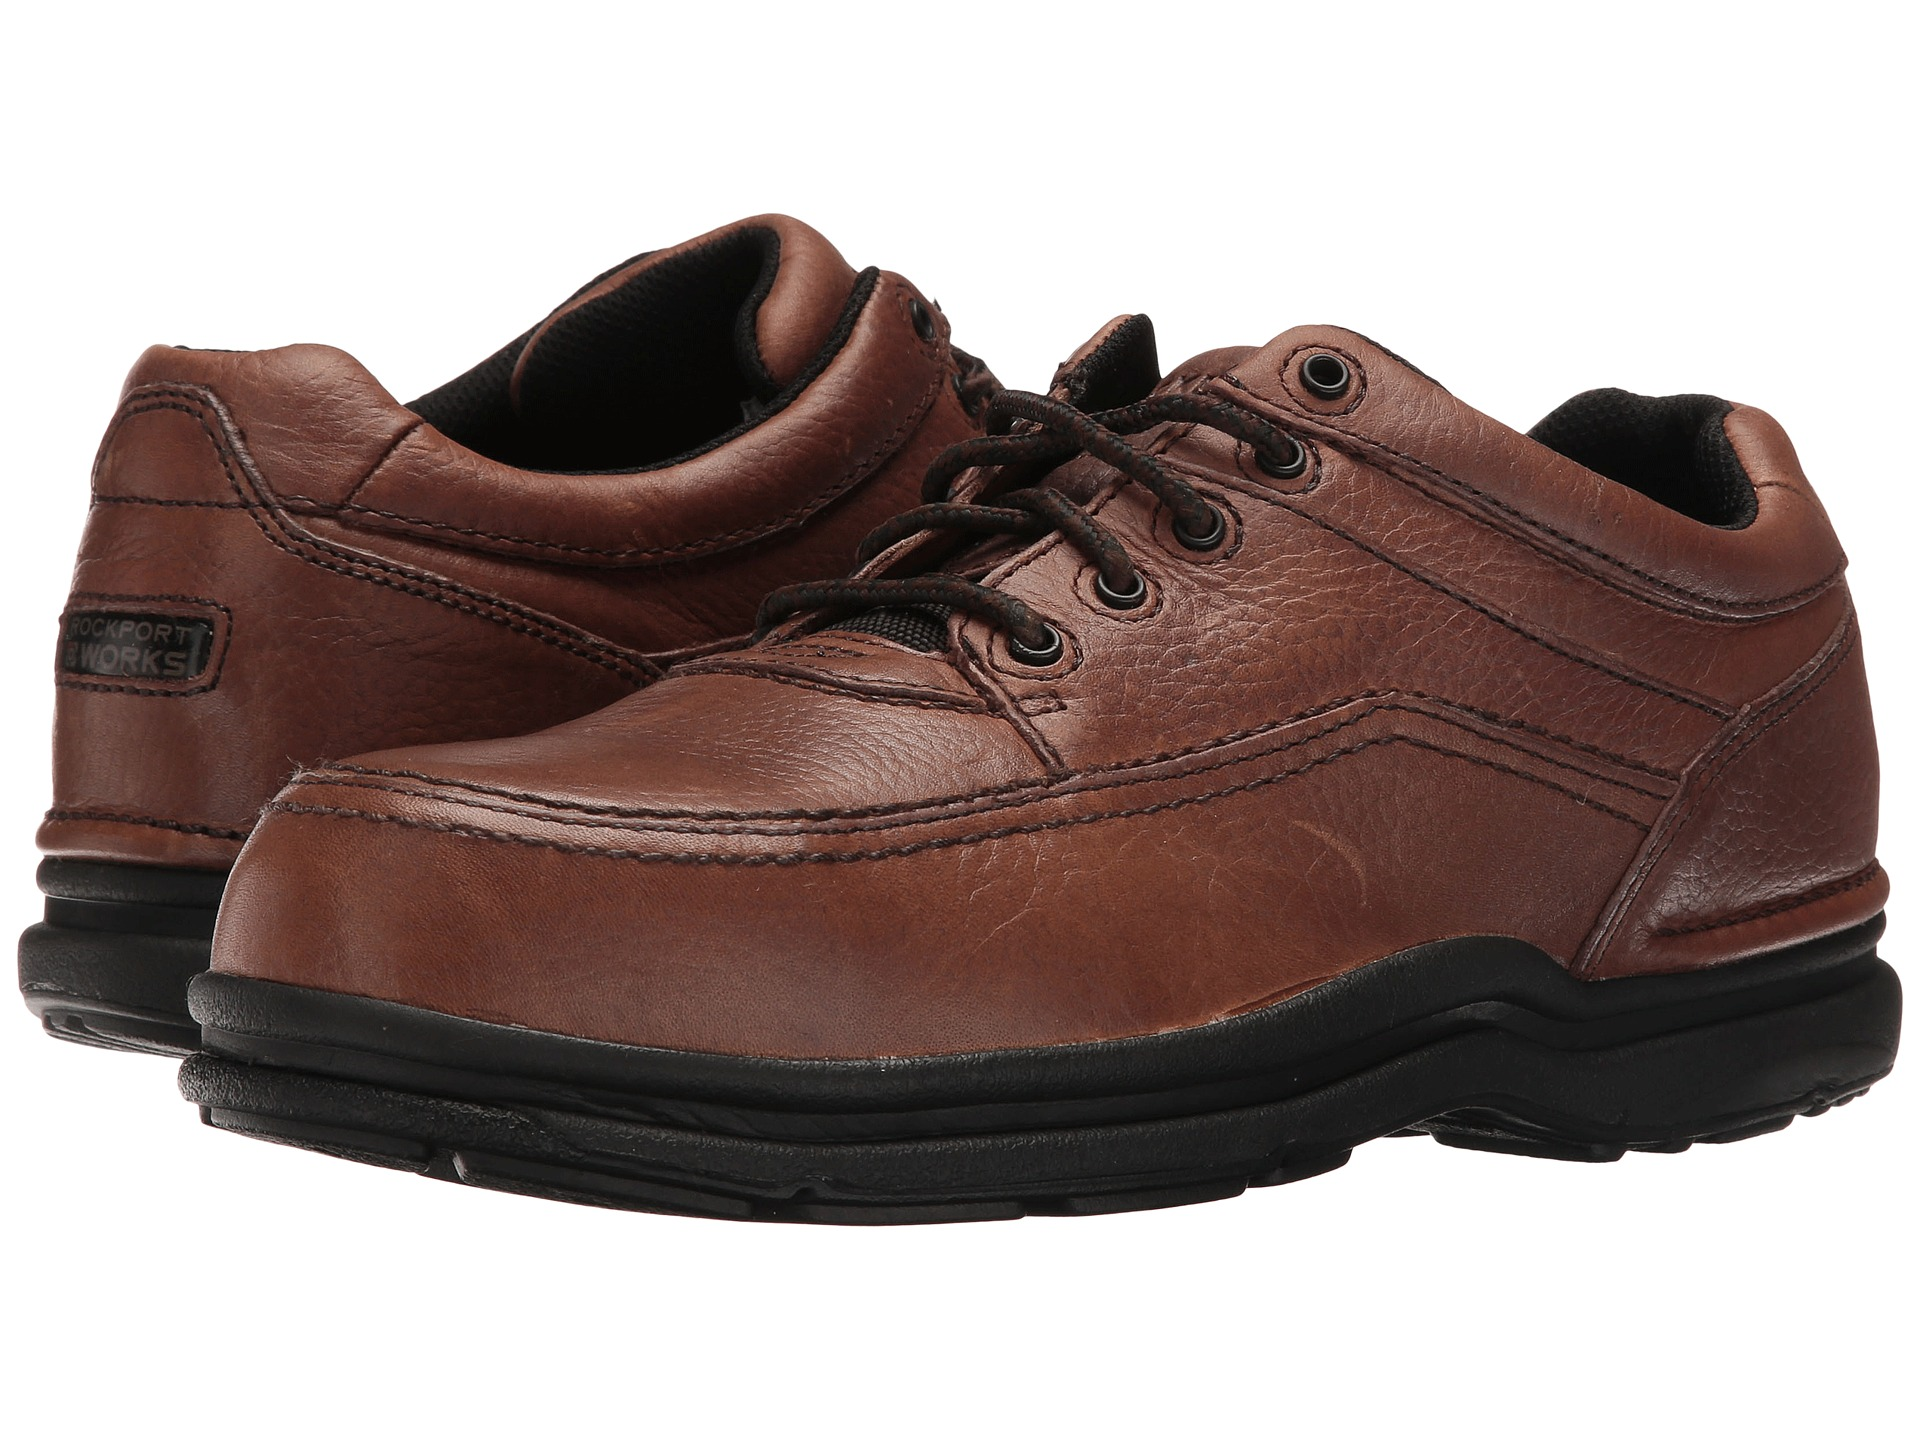 Rockport Works Slip Resistant Lace Up Shoes